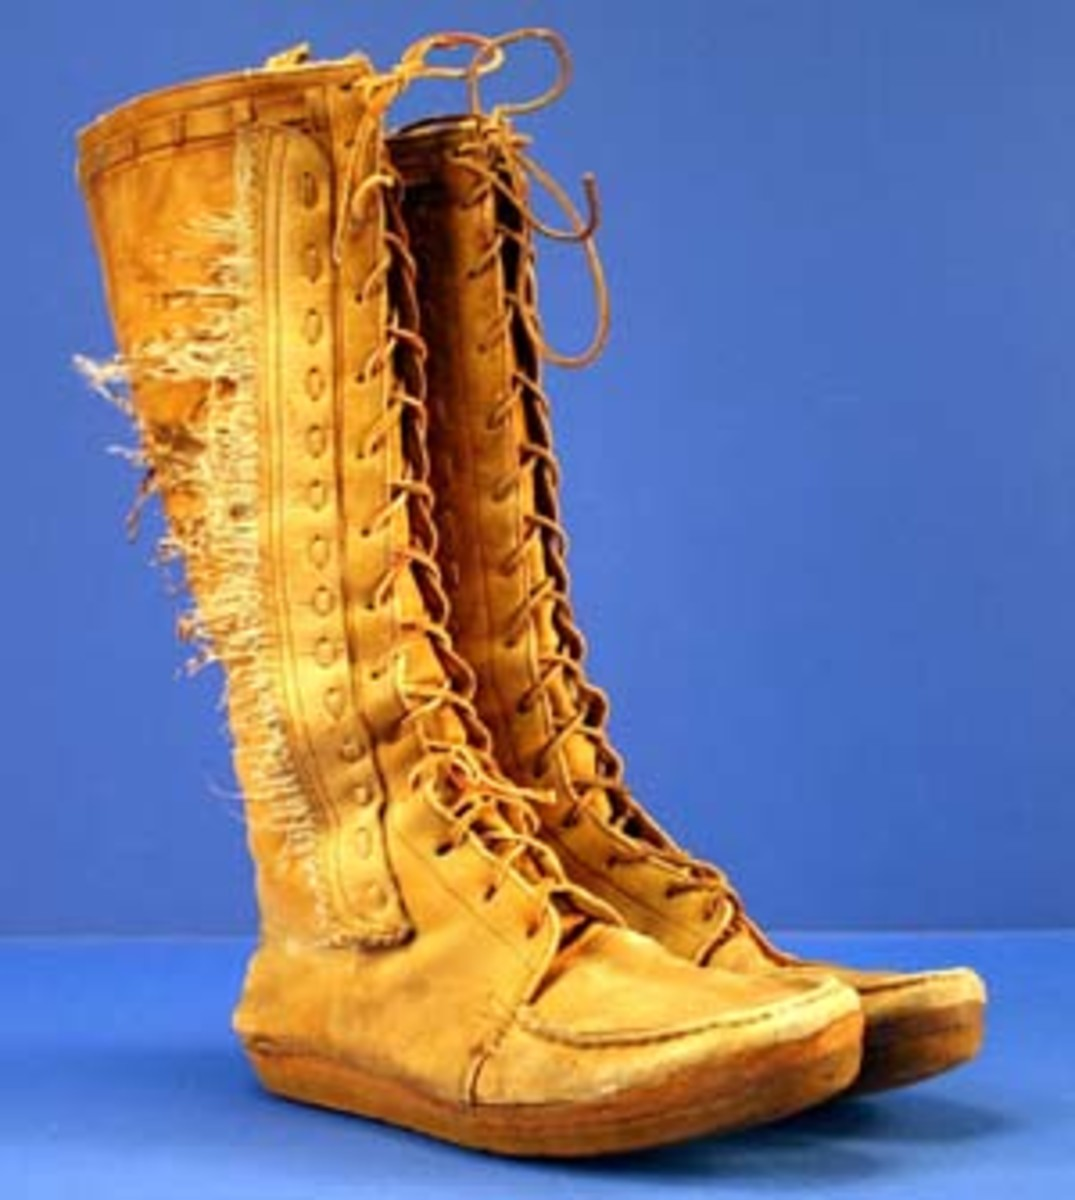 Uncle Ted's favorite Indian boots. Courtesy of Backstage Auctions